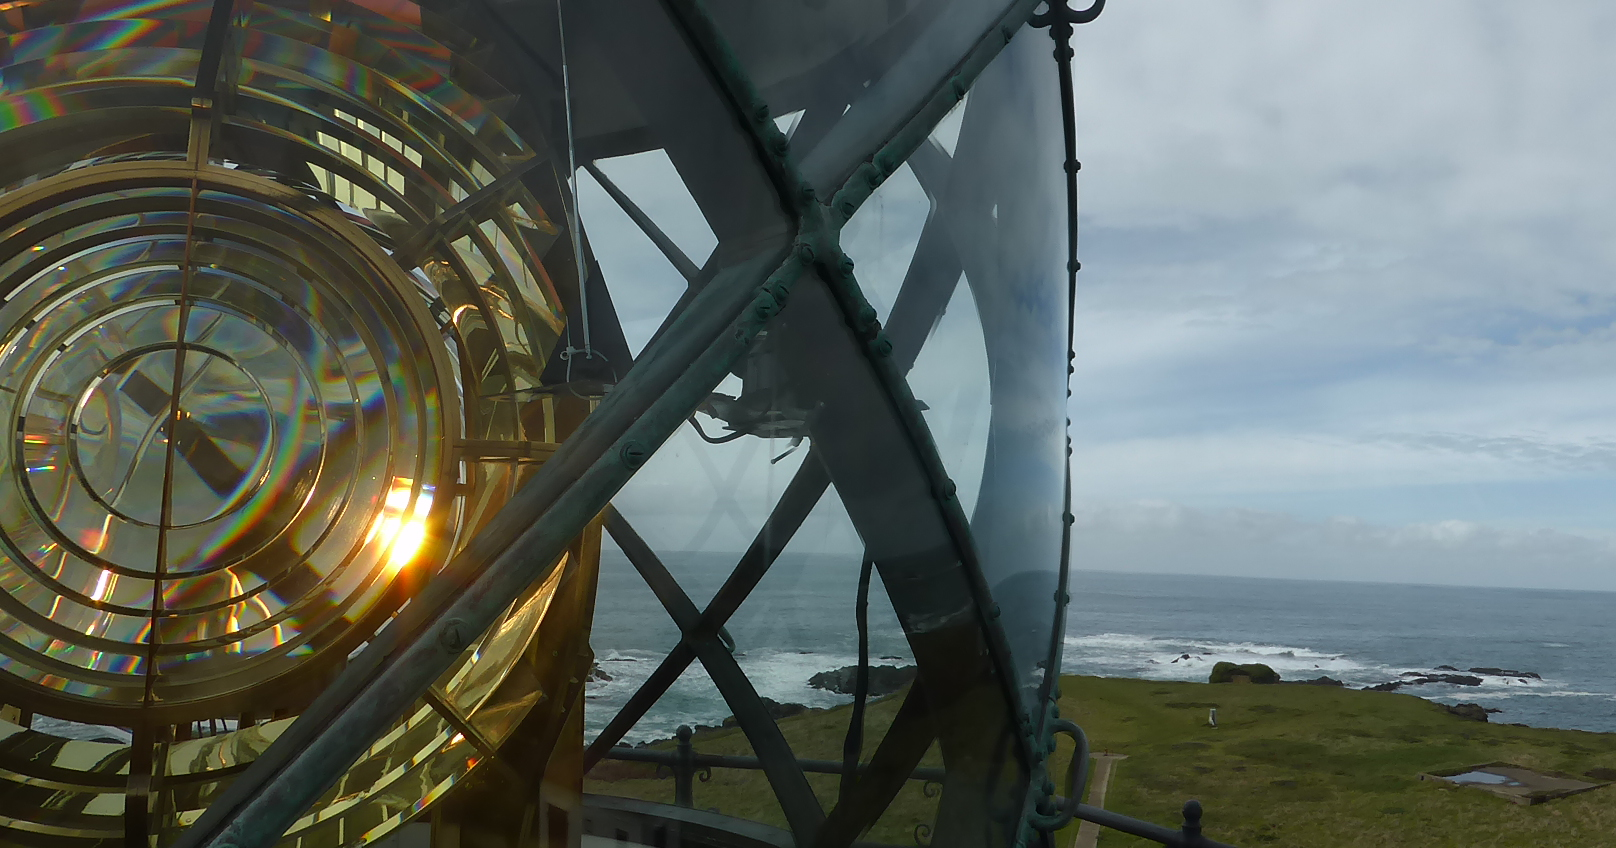 View from the top of the Point Cabrillo Lighthouse.